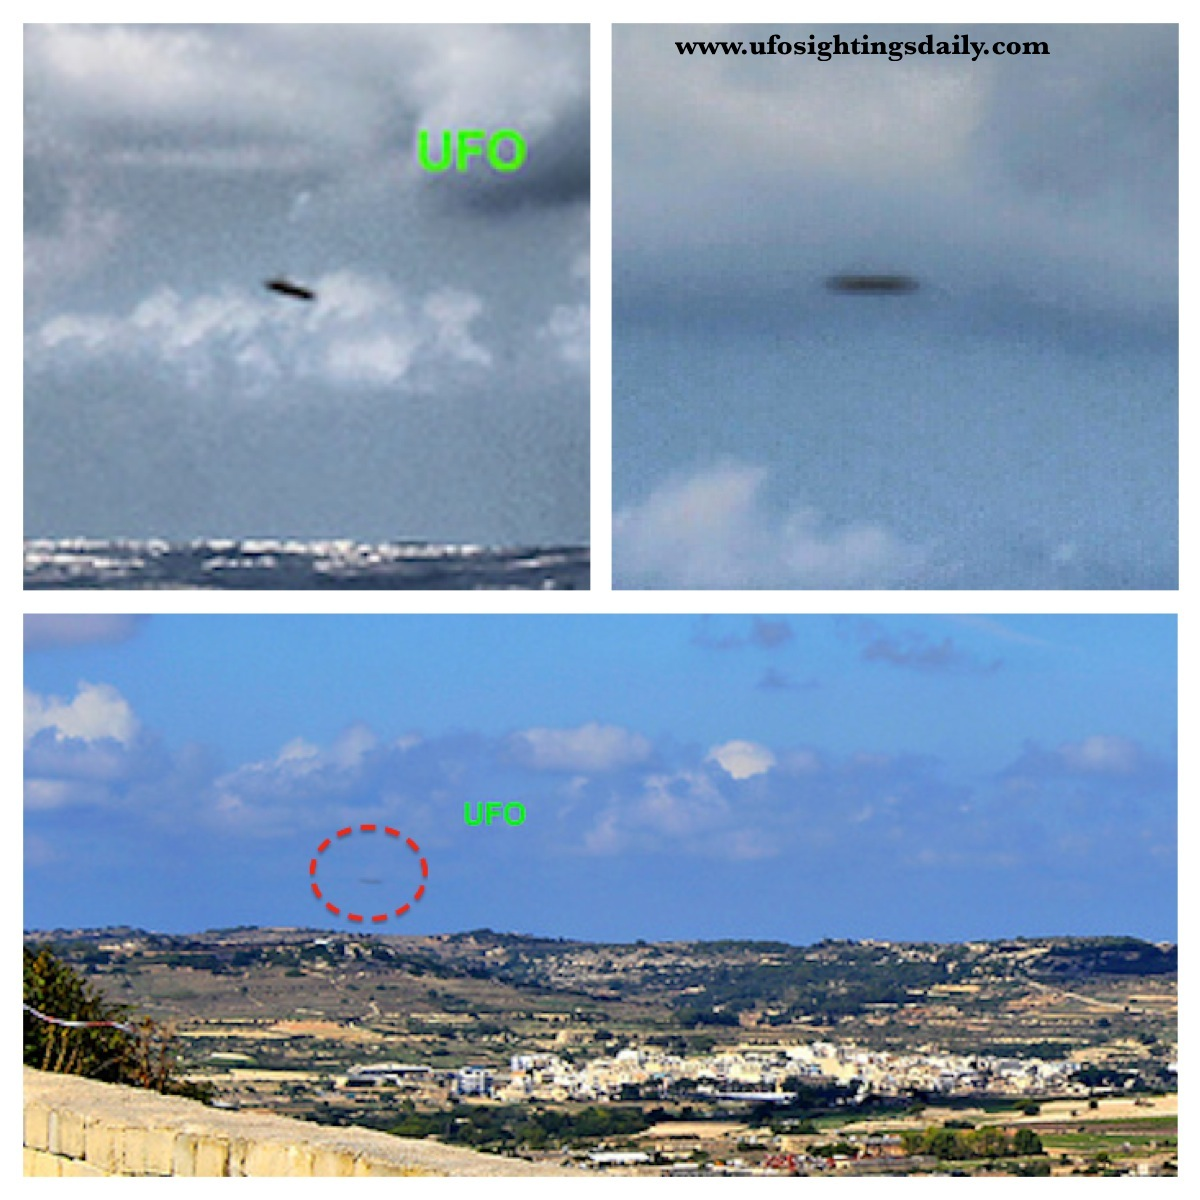 Ufo Sightings Daily Ufo Sighting Over Landfill In Malta Sept 18